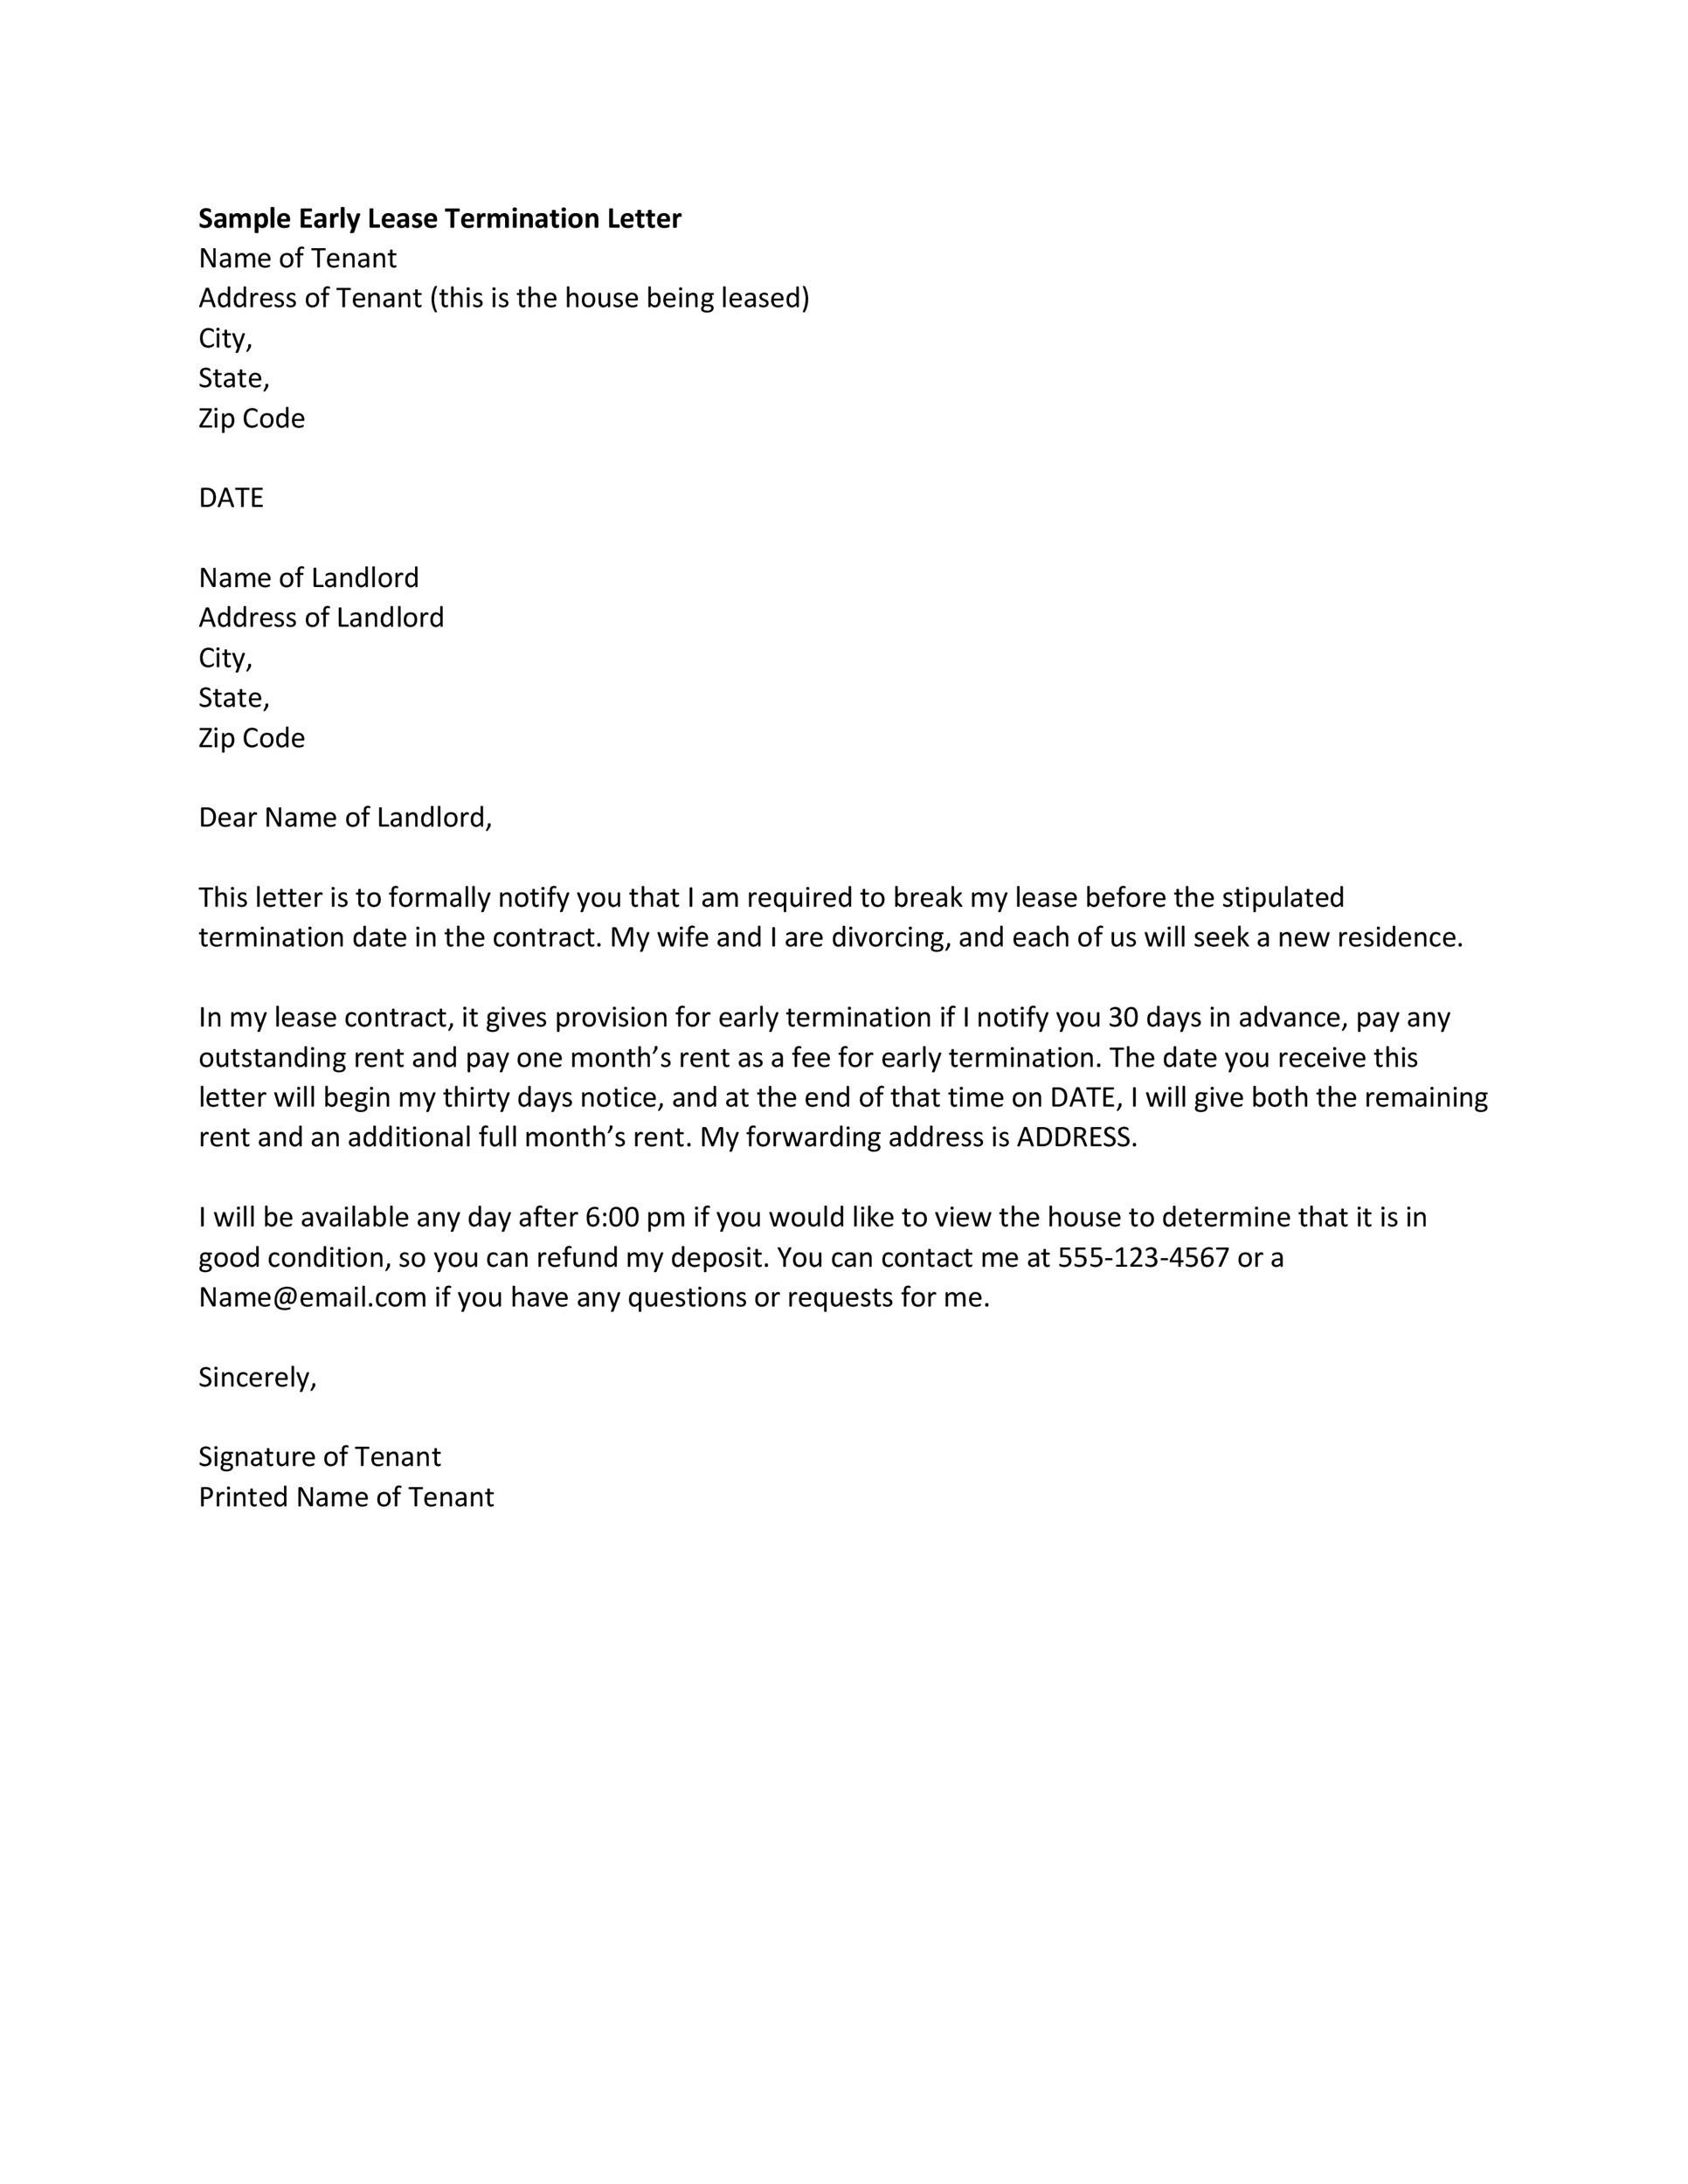 Letter Of Termination Template from templatelab.com